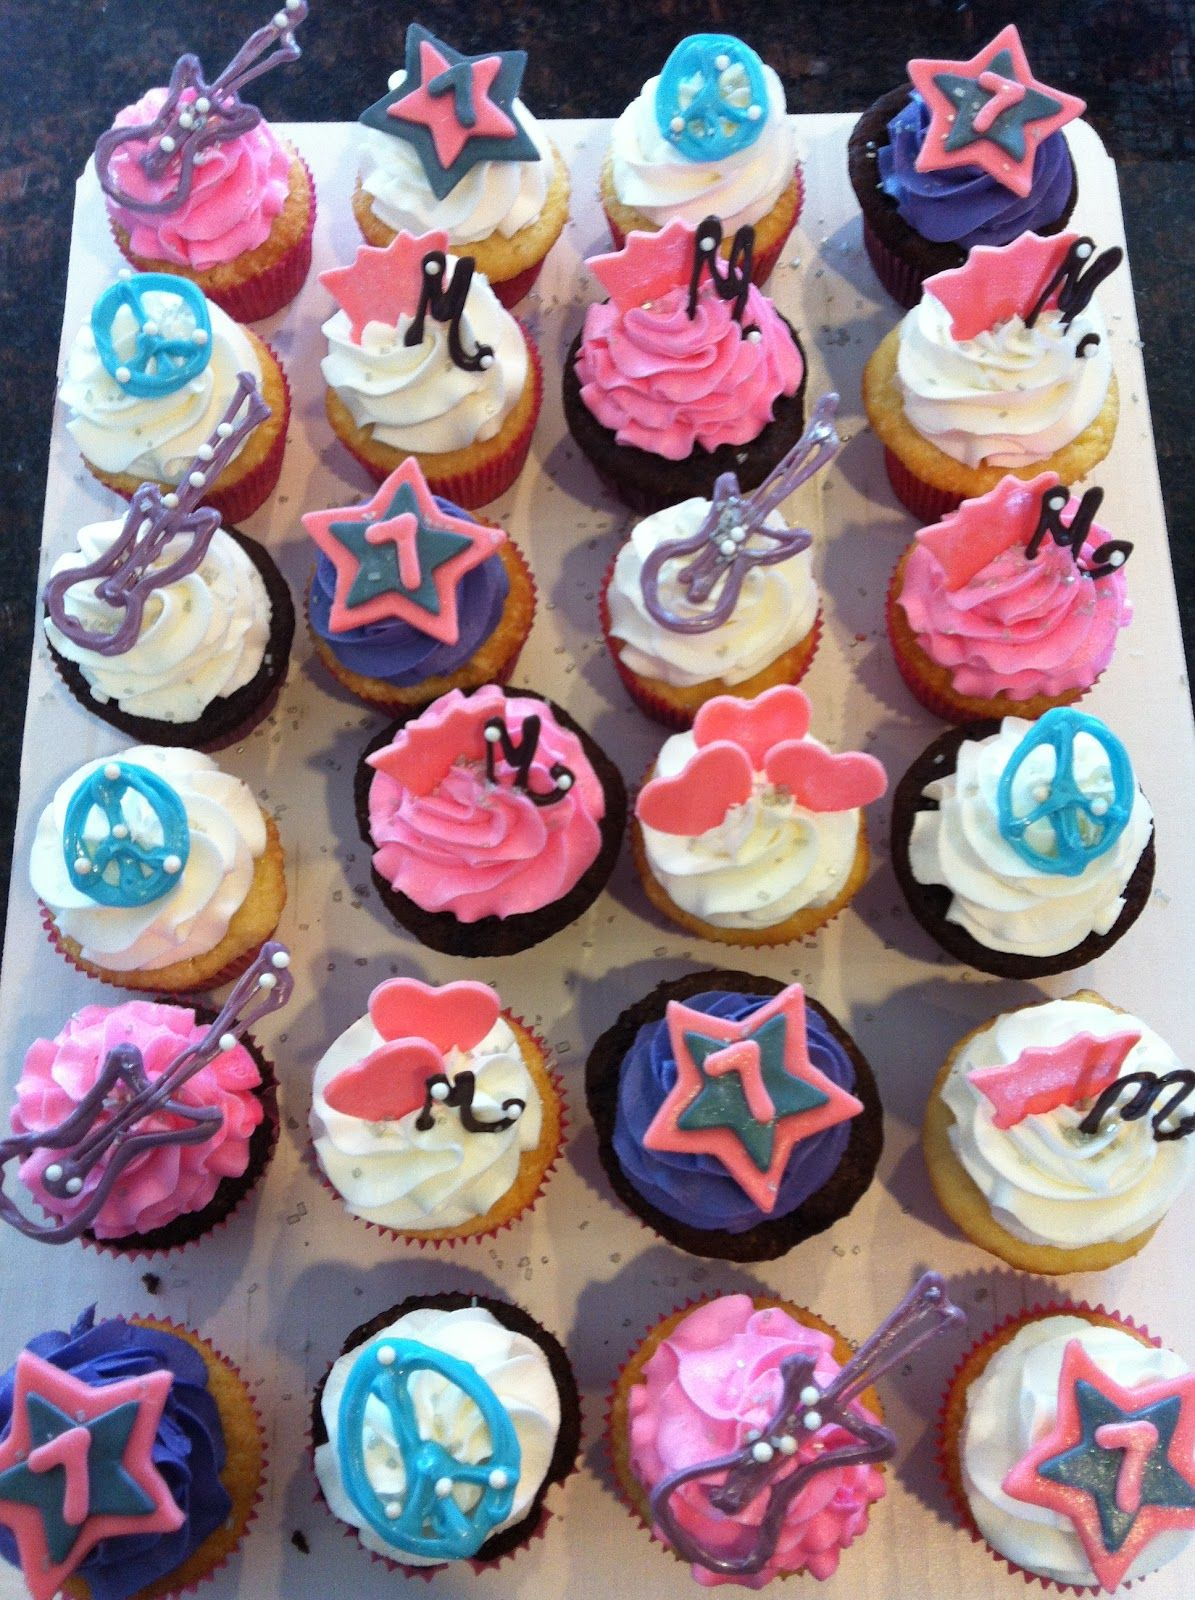 rockstar birthday cakes Rockstar Birthday Cakes And Cupcakes